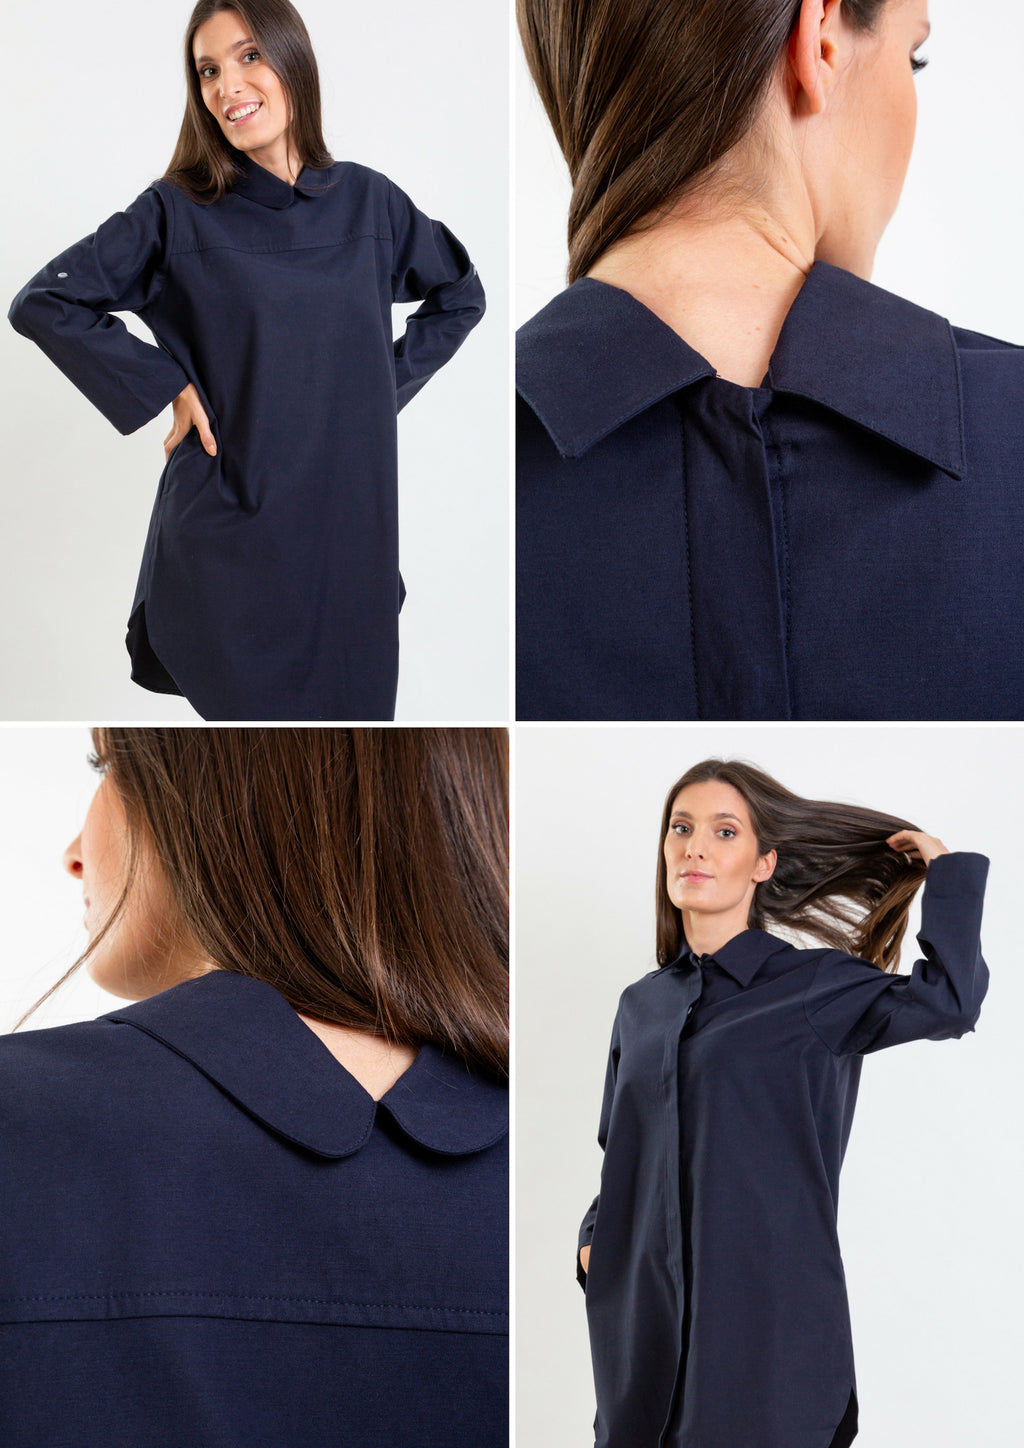 Multifunctional navy shirt whic can be worn as  a long shirt, dress or tunic.